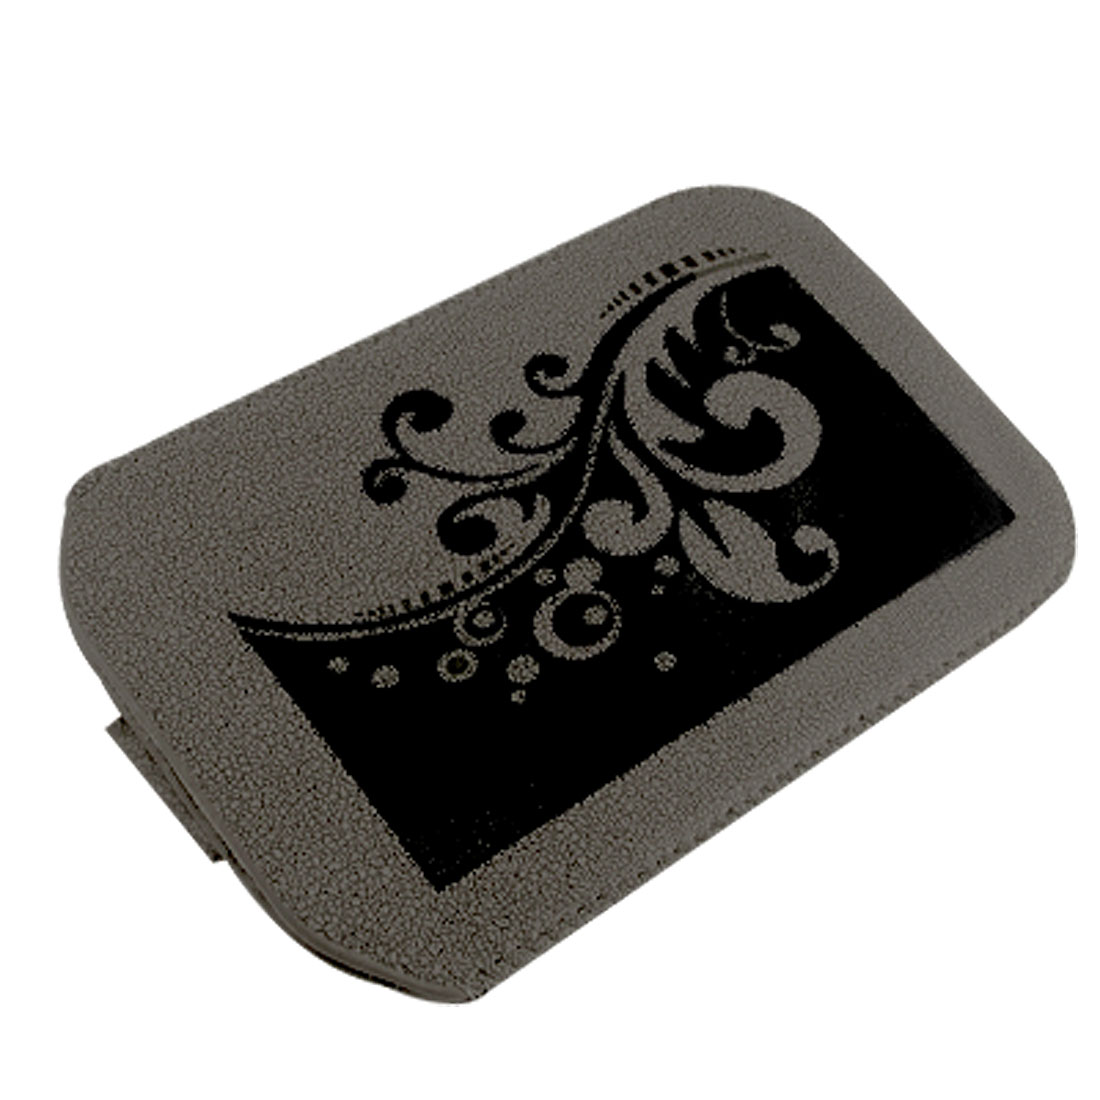 Flower Pattern Pull Up Dark Gray Pouch Case for iPhone 3G